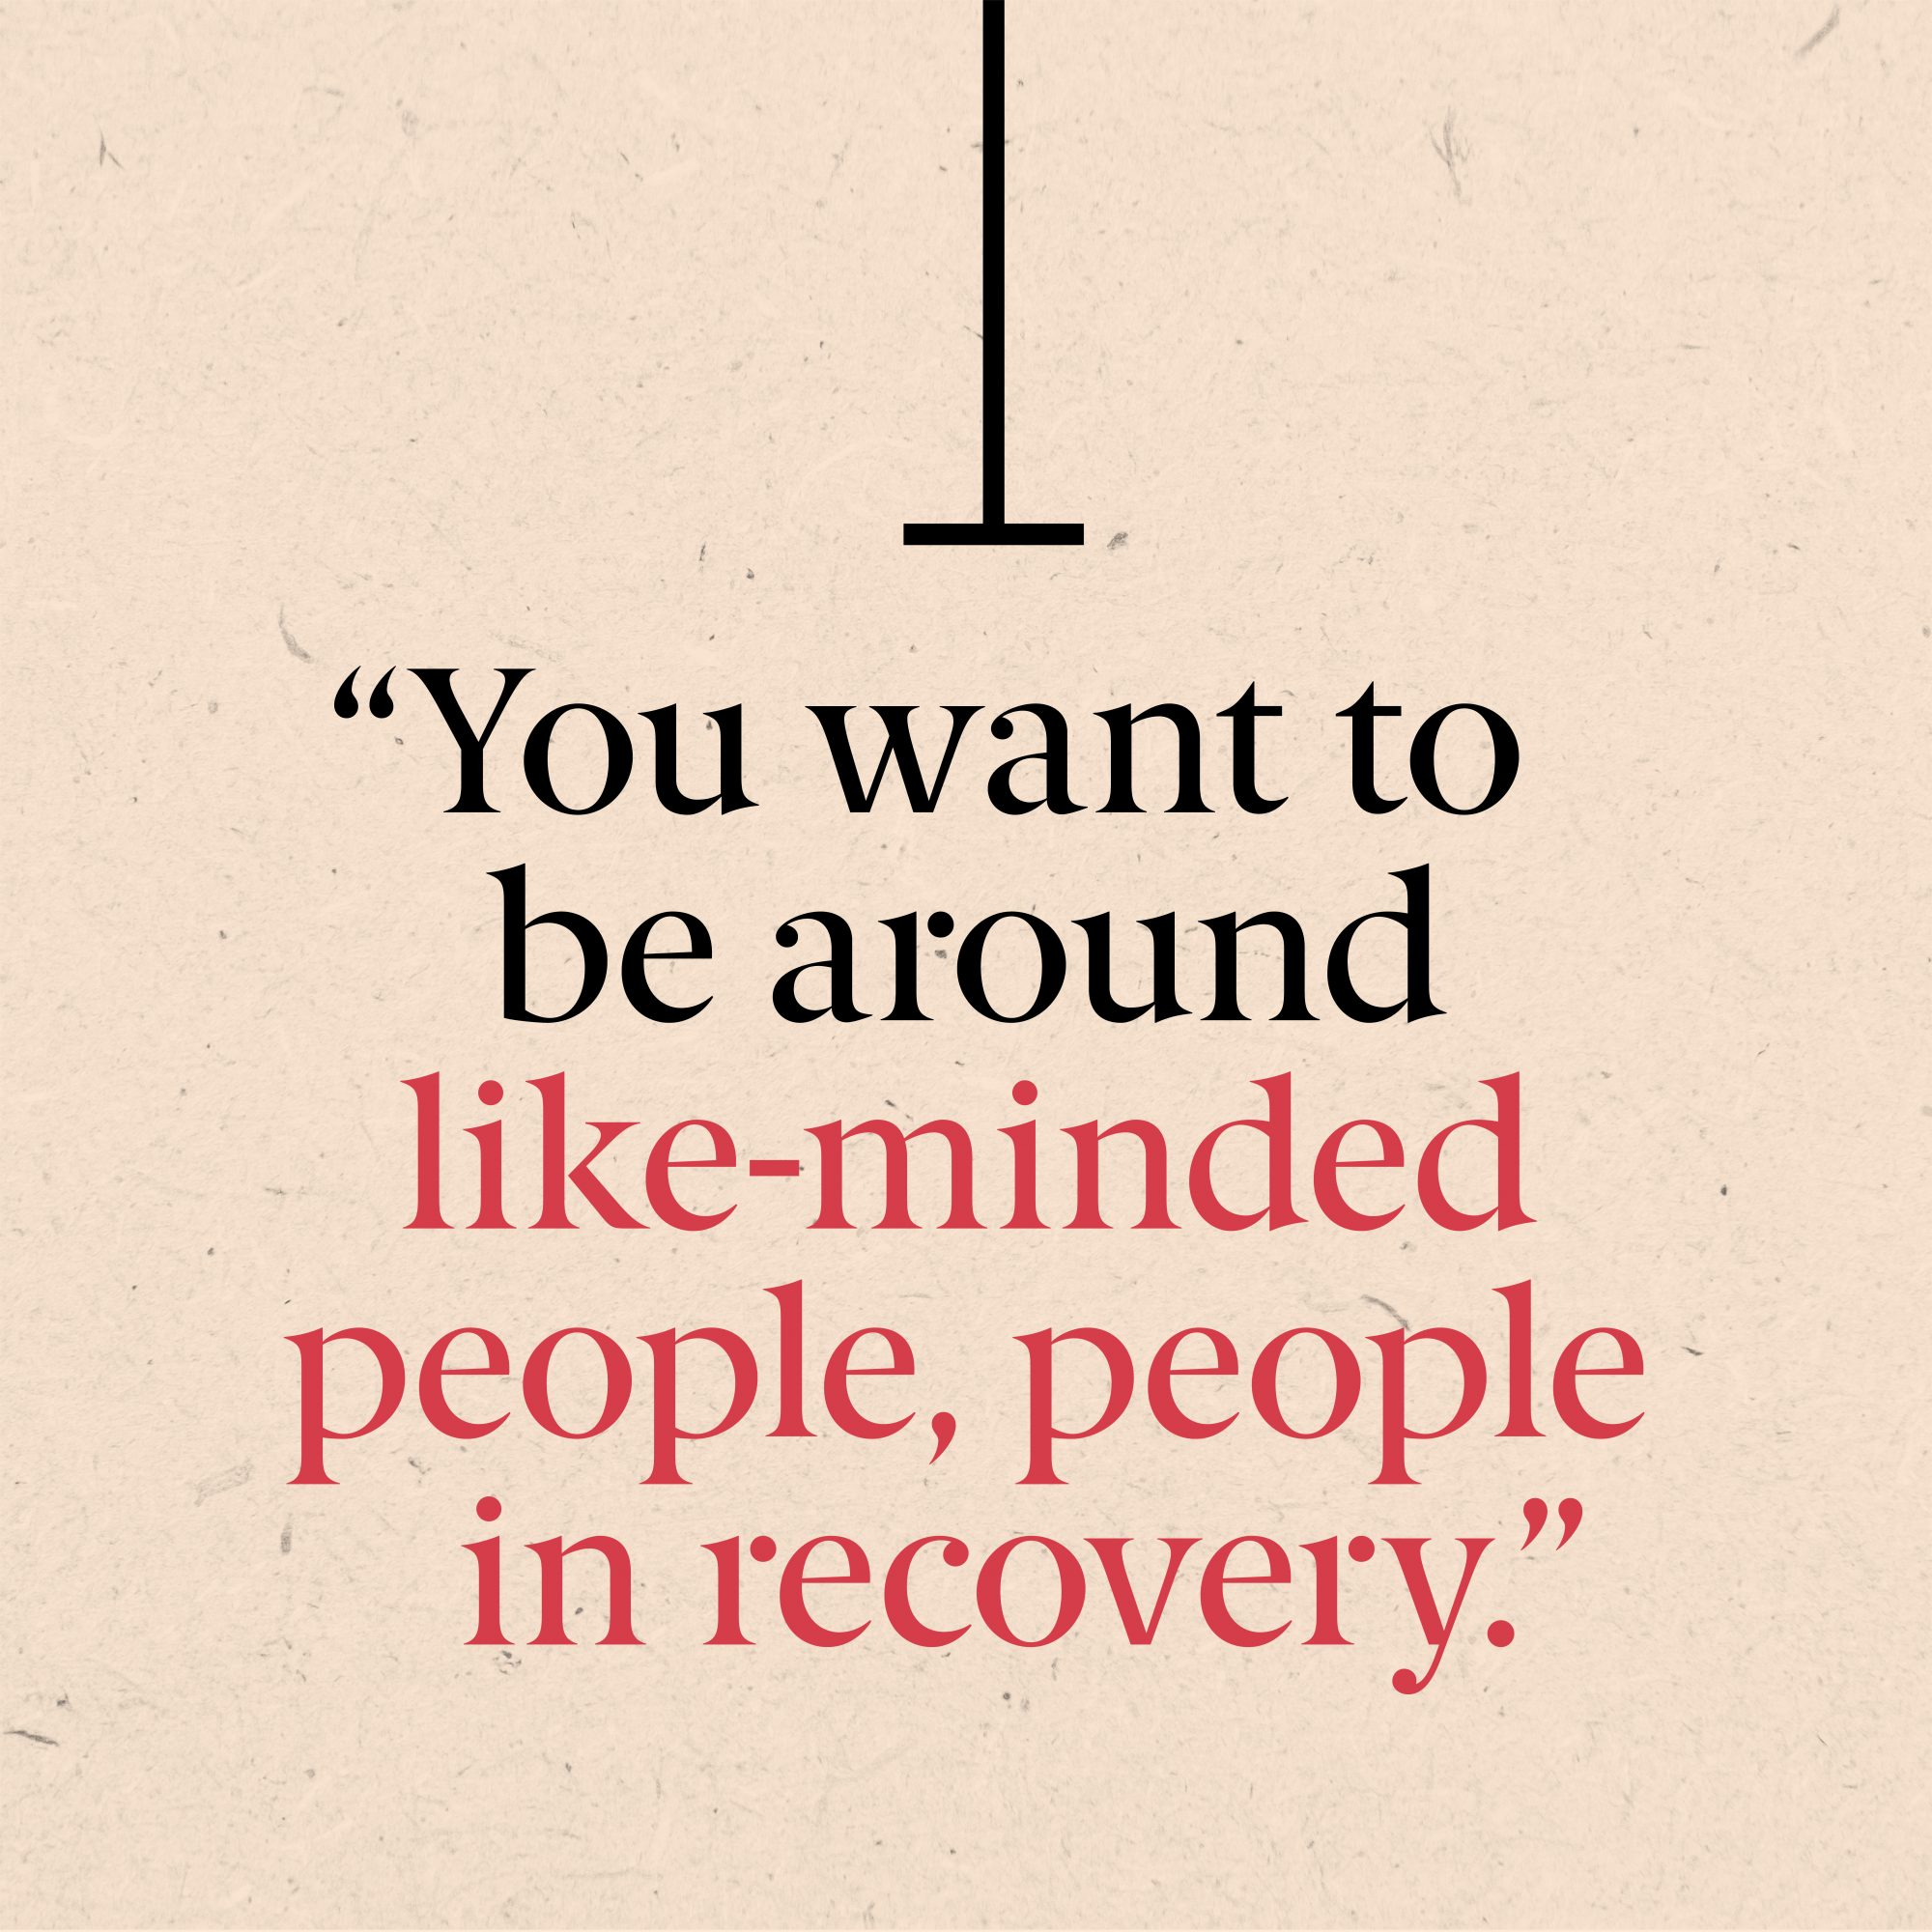 You want to be around like-minded people, people in recovery,